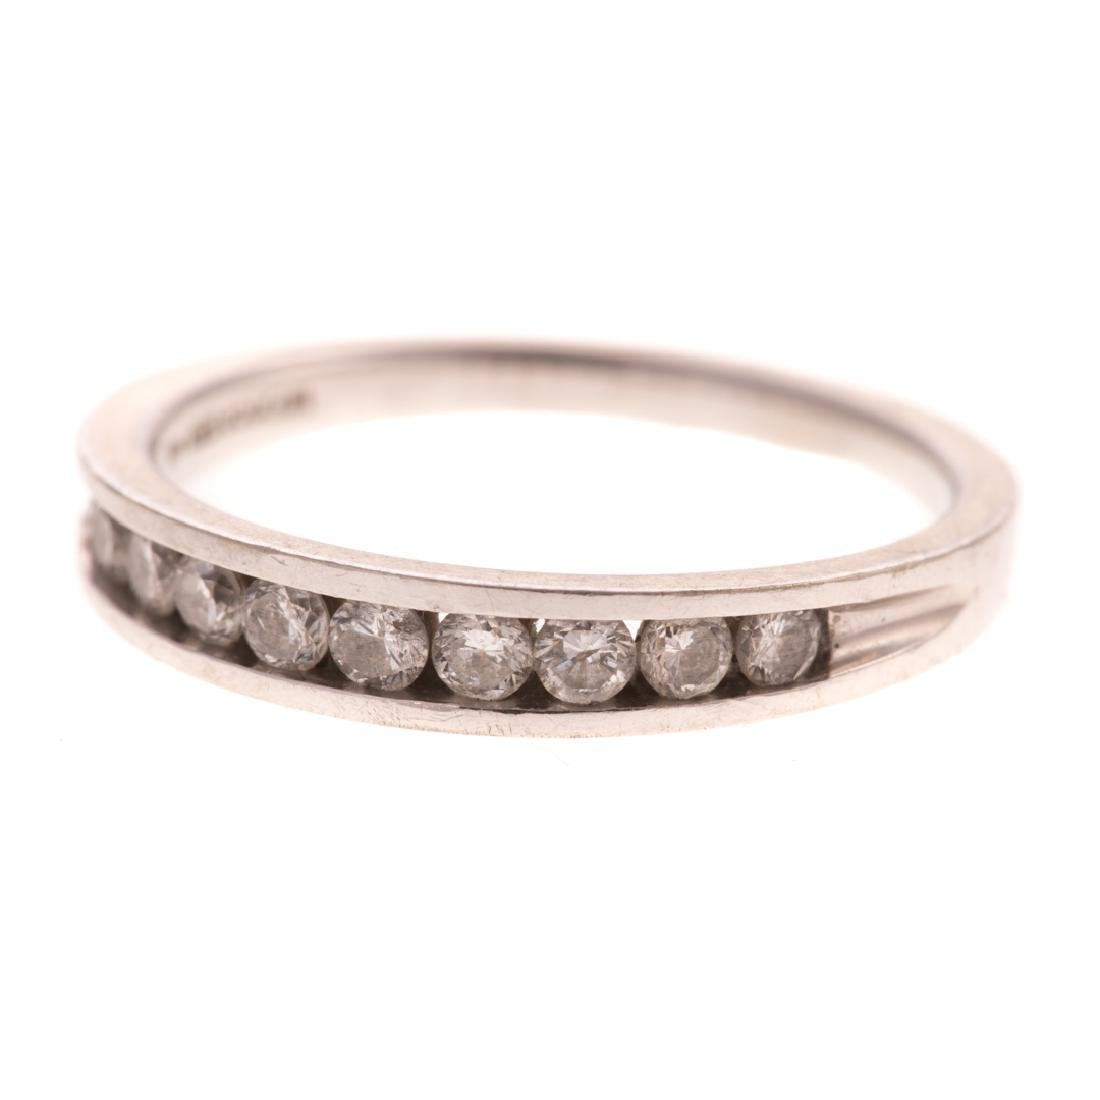 Two Lady's Diamond Wedding Bands in 14K Gold - 2